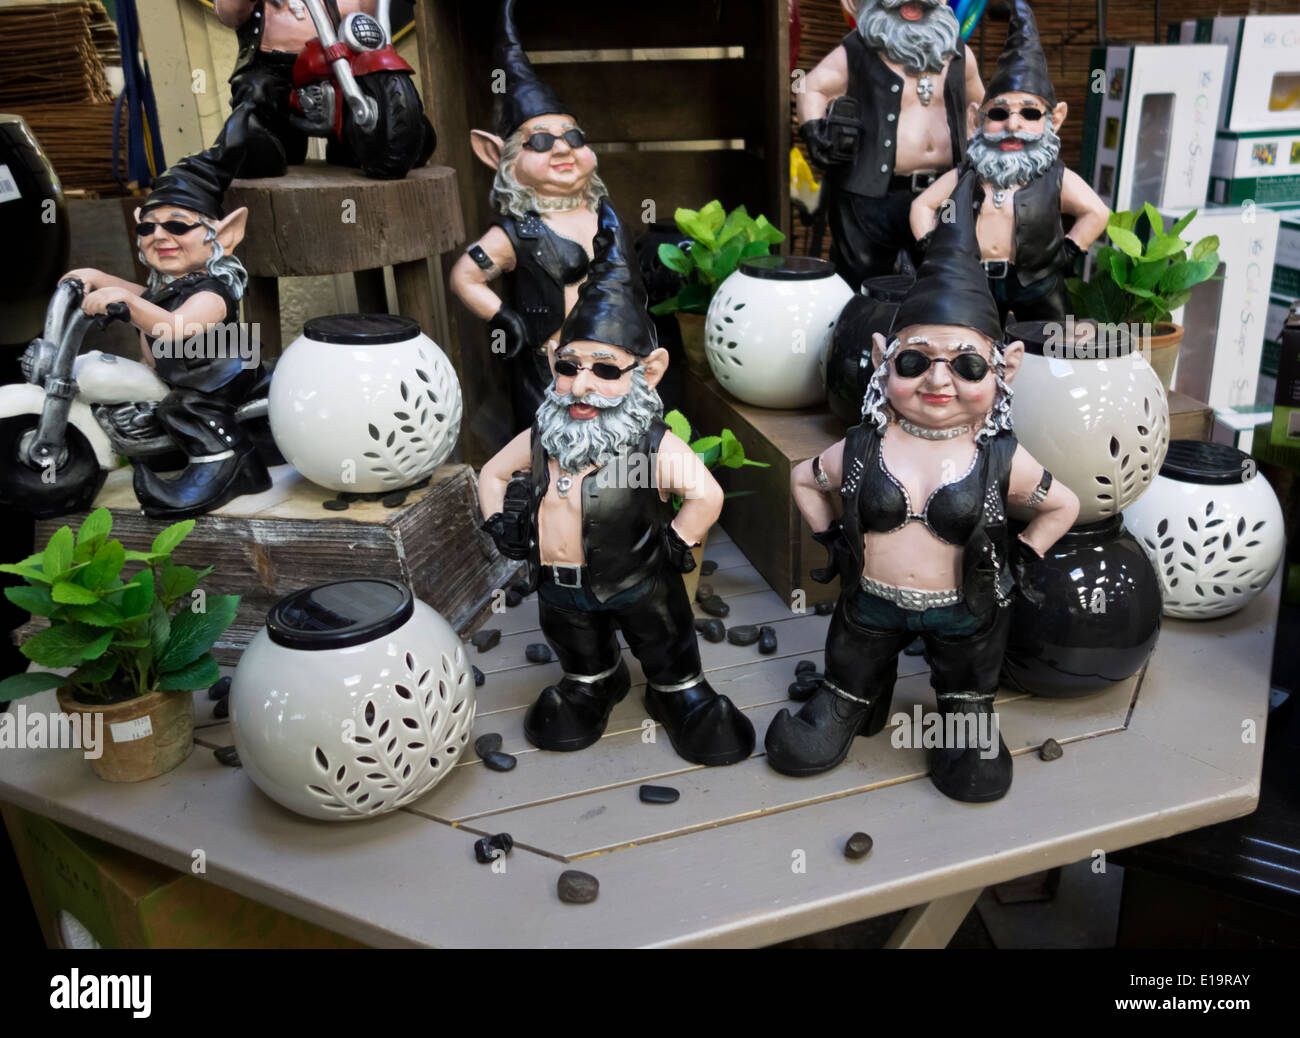 Amazing Biker Garden Gnomes Lawn Ornaments On Display In A Garden Center. Gnoschitt  And Gnofun Motorcycle